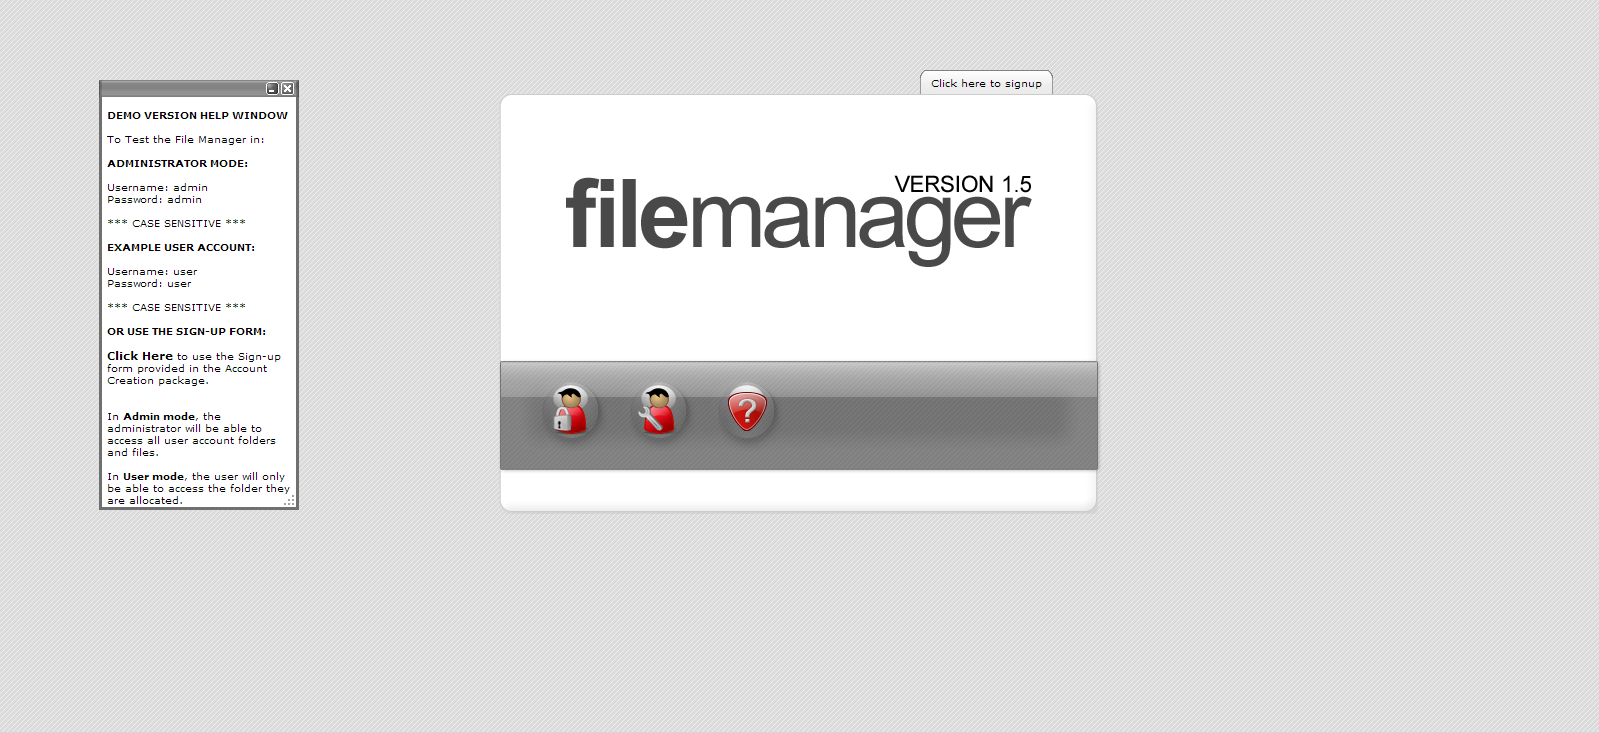 5 Best Web Based File Managers That Help Manage and Share Your Files - IDC File Manager